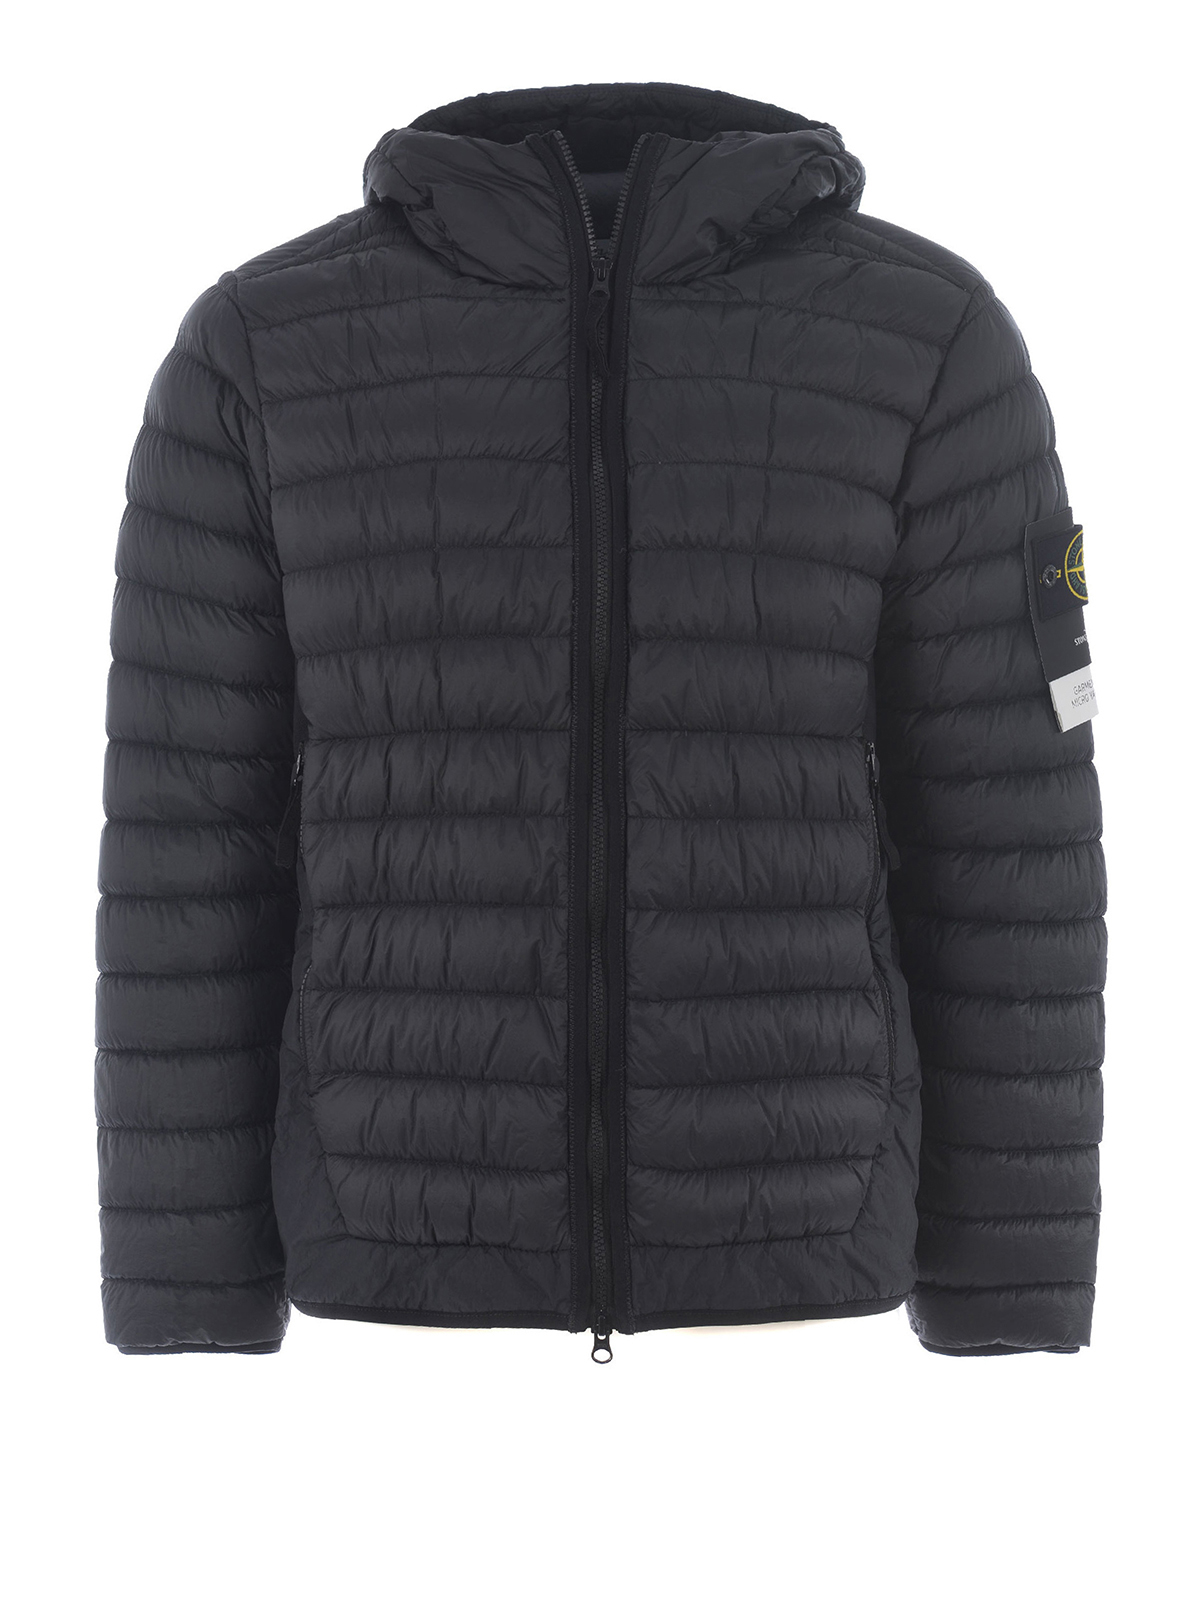 ellesse Filardi padded overhead jacket in black. $ Produkt puffer jacket. $ Lacoste padded hooded color block puffer jacket in black. $ Pull&Bear quilted jacket with hood in blue. $ River Island puffer jacket in bright yellow. $ Criminal Damage puffer jacket in black .